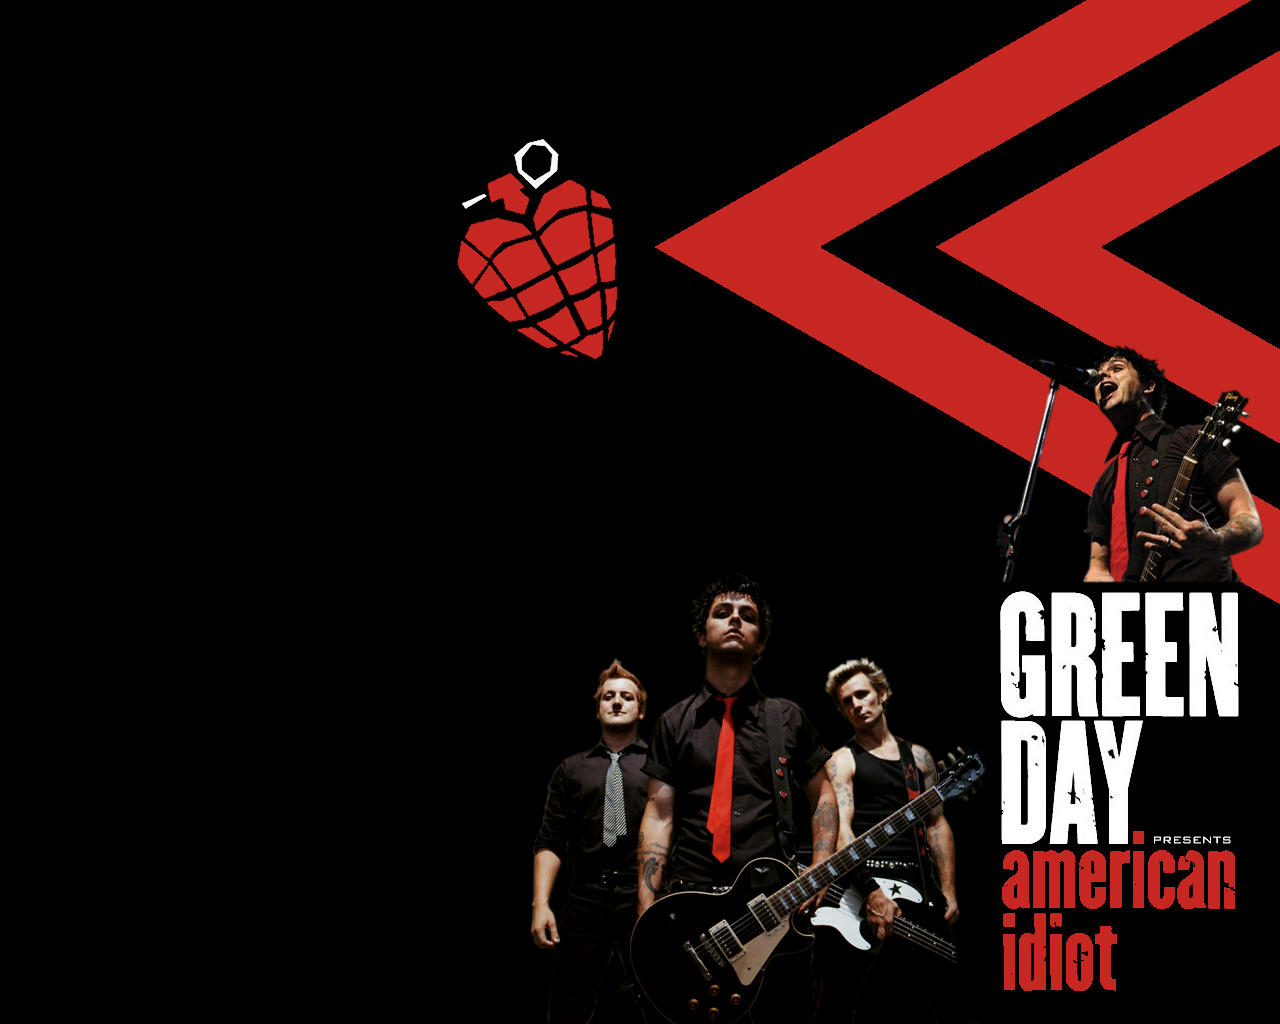 Green Day American Idiot by Aegis89 on DeviantArt